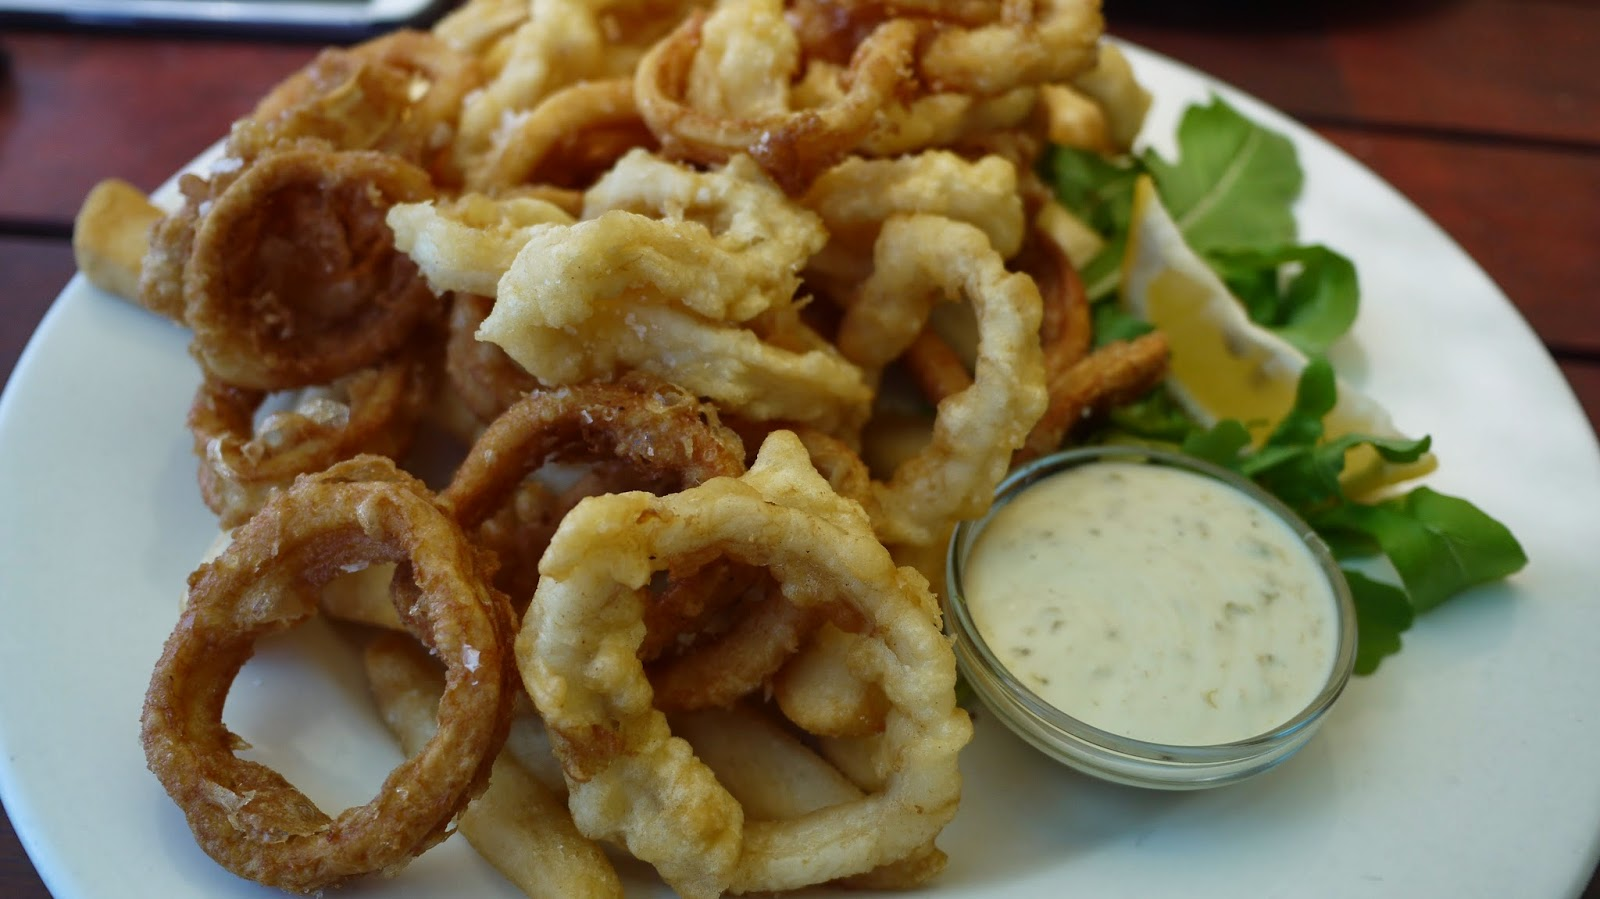 Calamari at The Kiosk on Floreat Beach